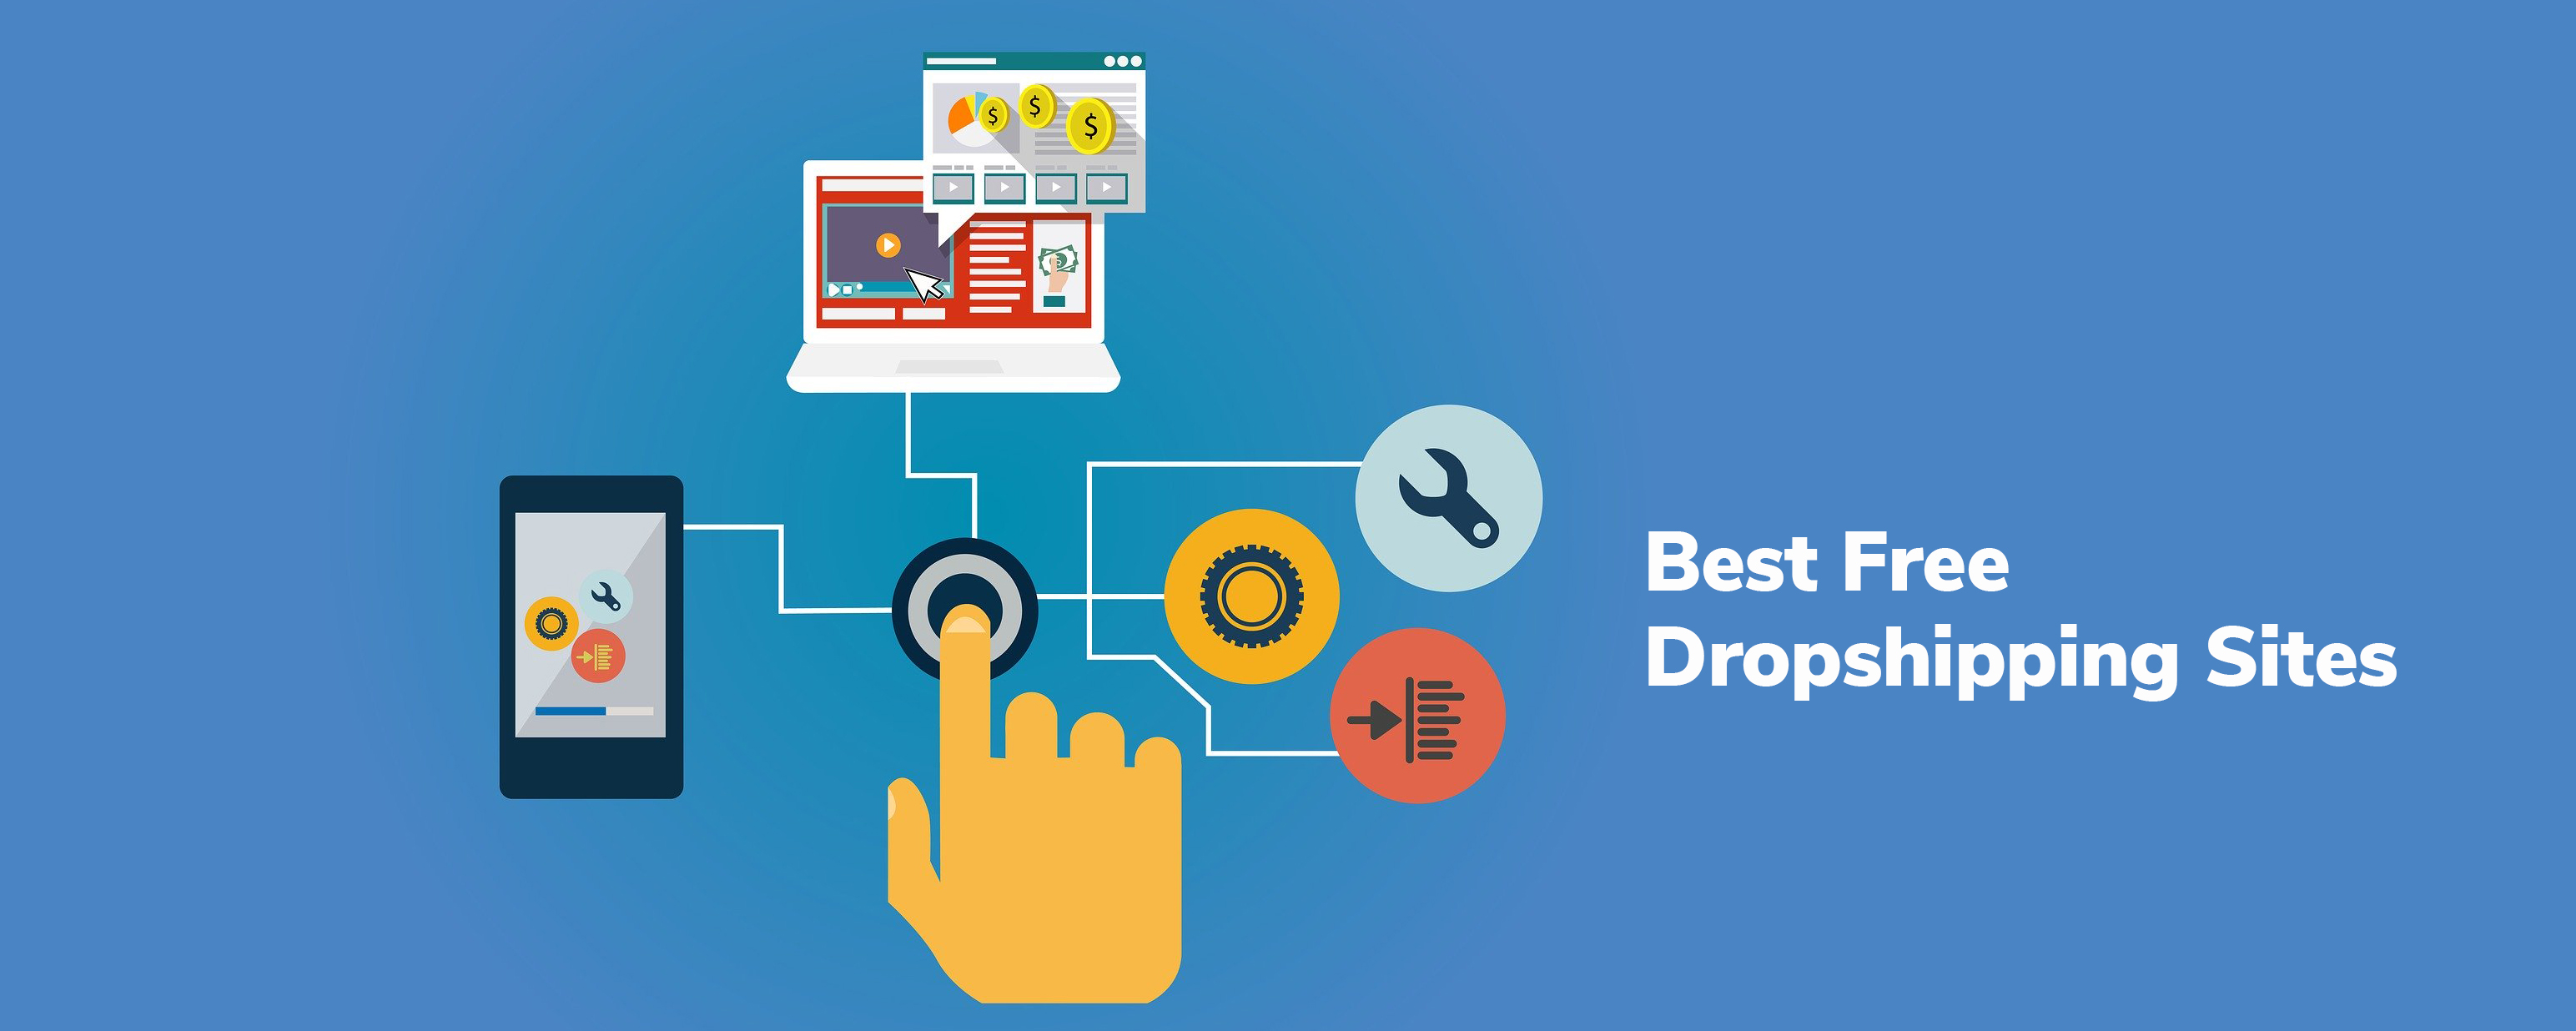 best-free-dropshipping-sites_without-membership-fees